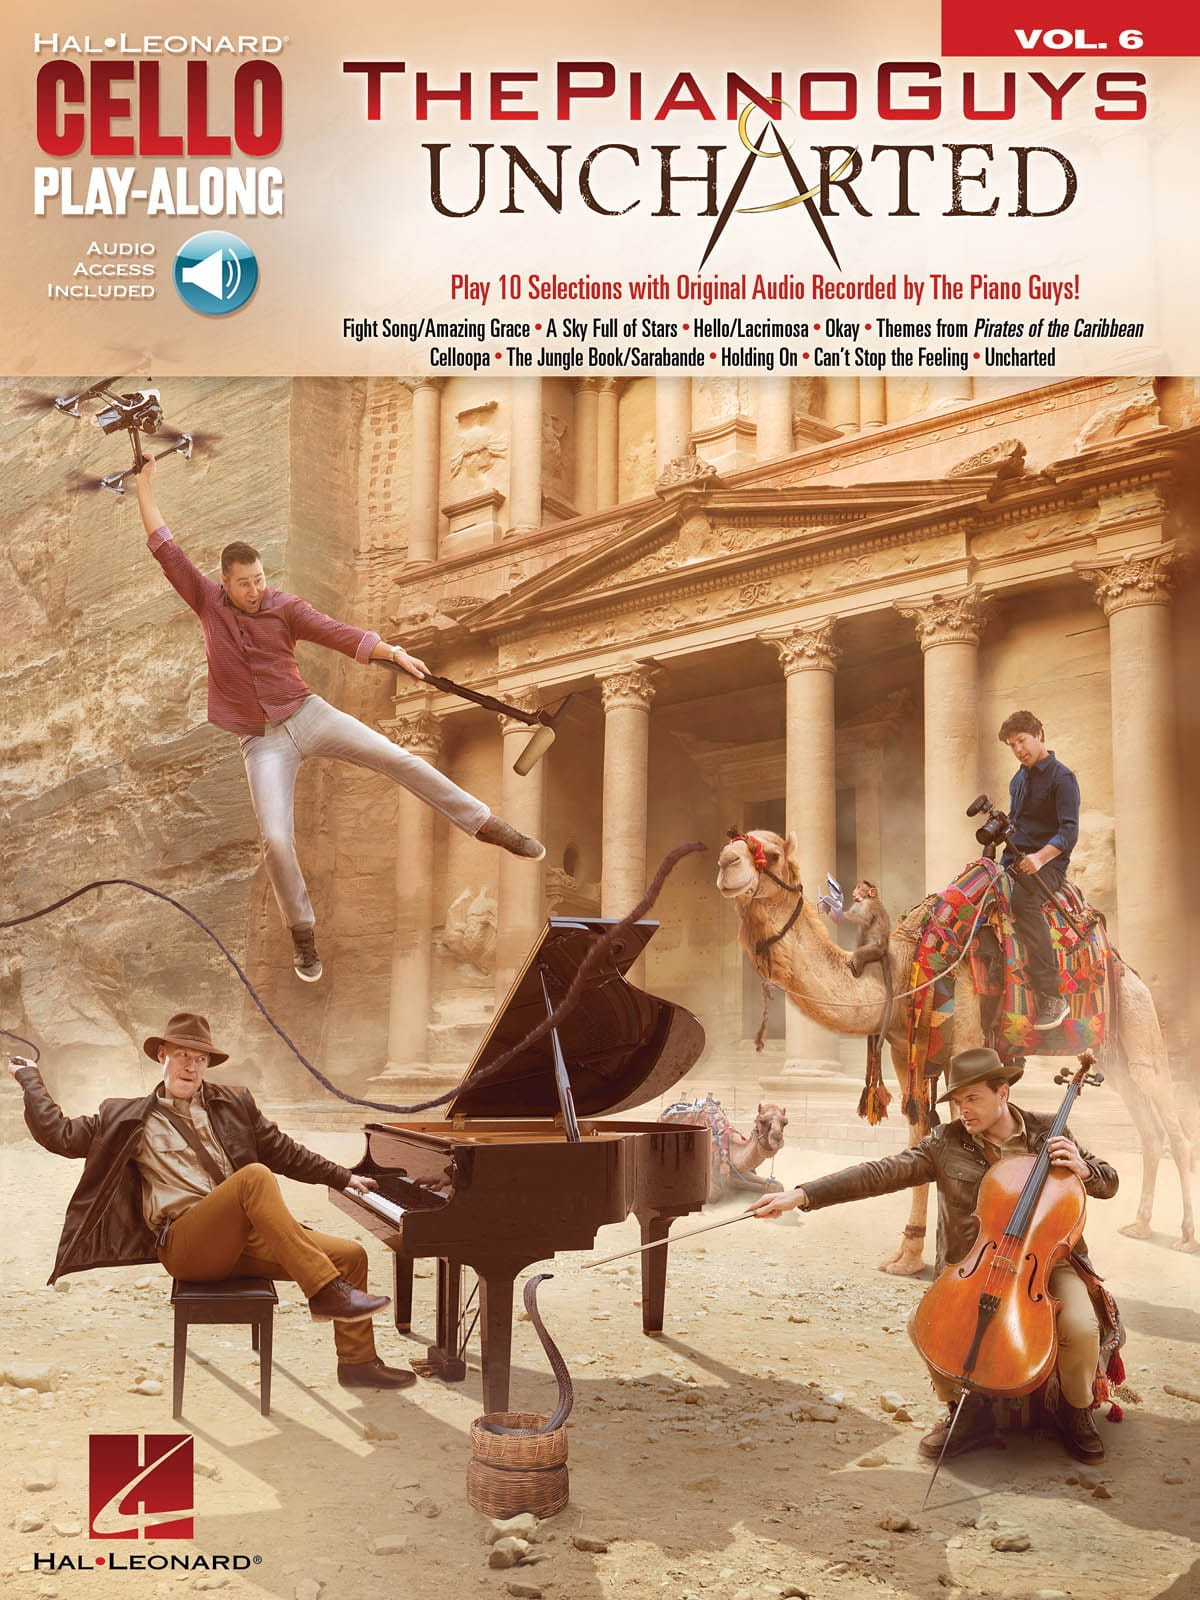 ThePianoGuys - Cello Play-Along Band 6 - Die Piano Guys - Uncharted - Partition - di-arezzo.de